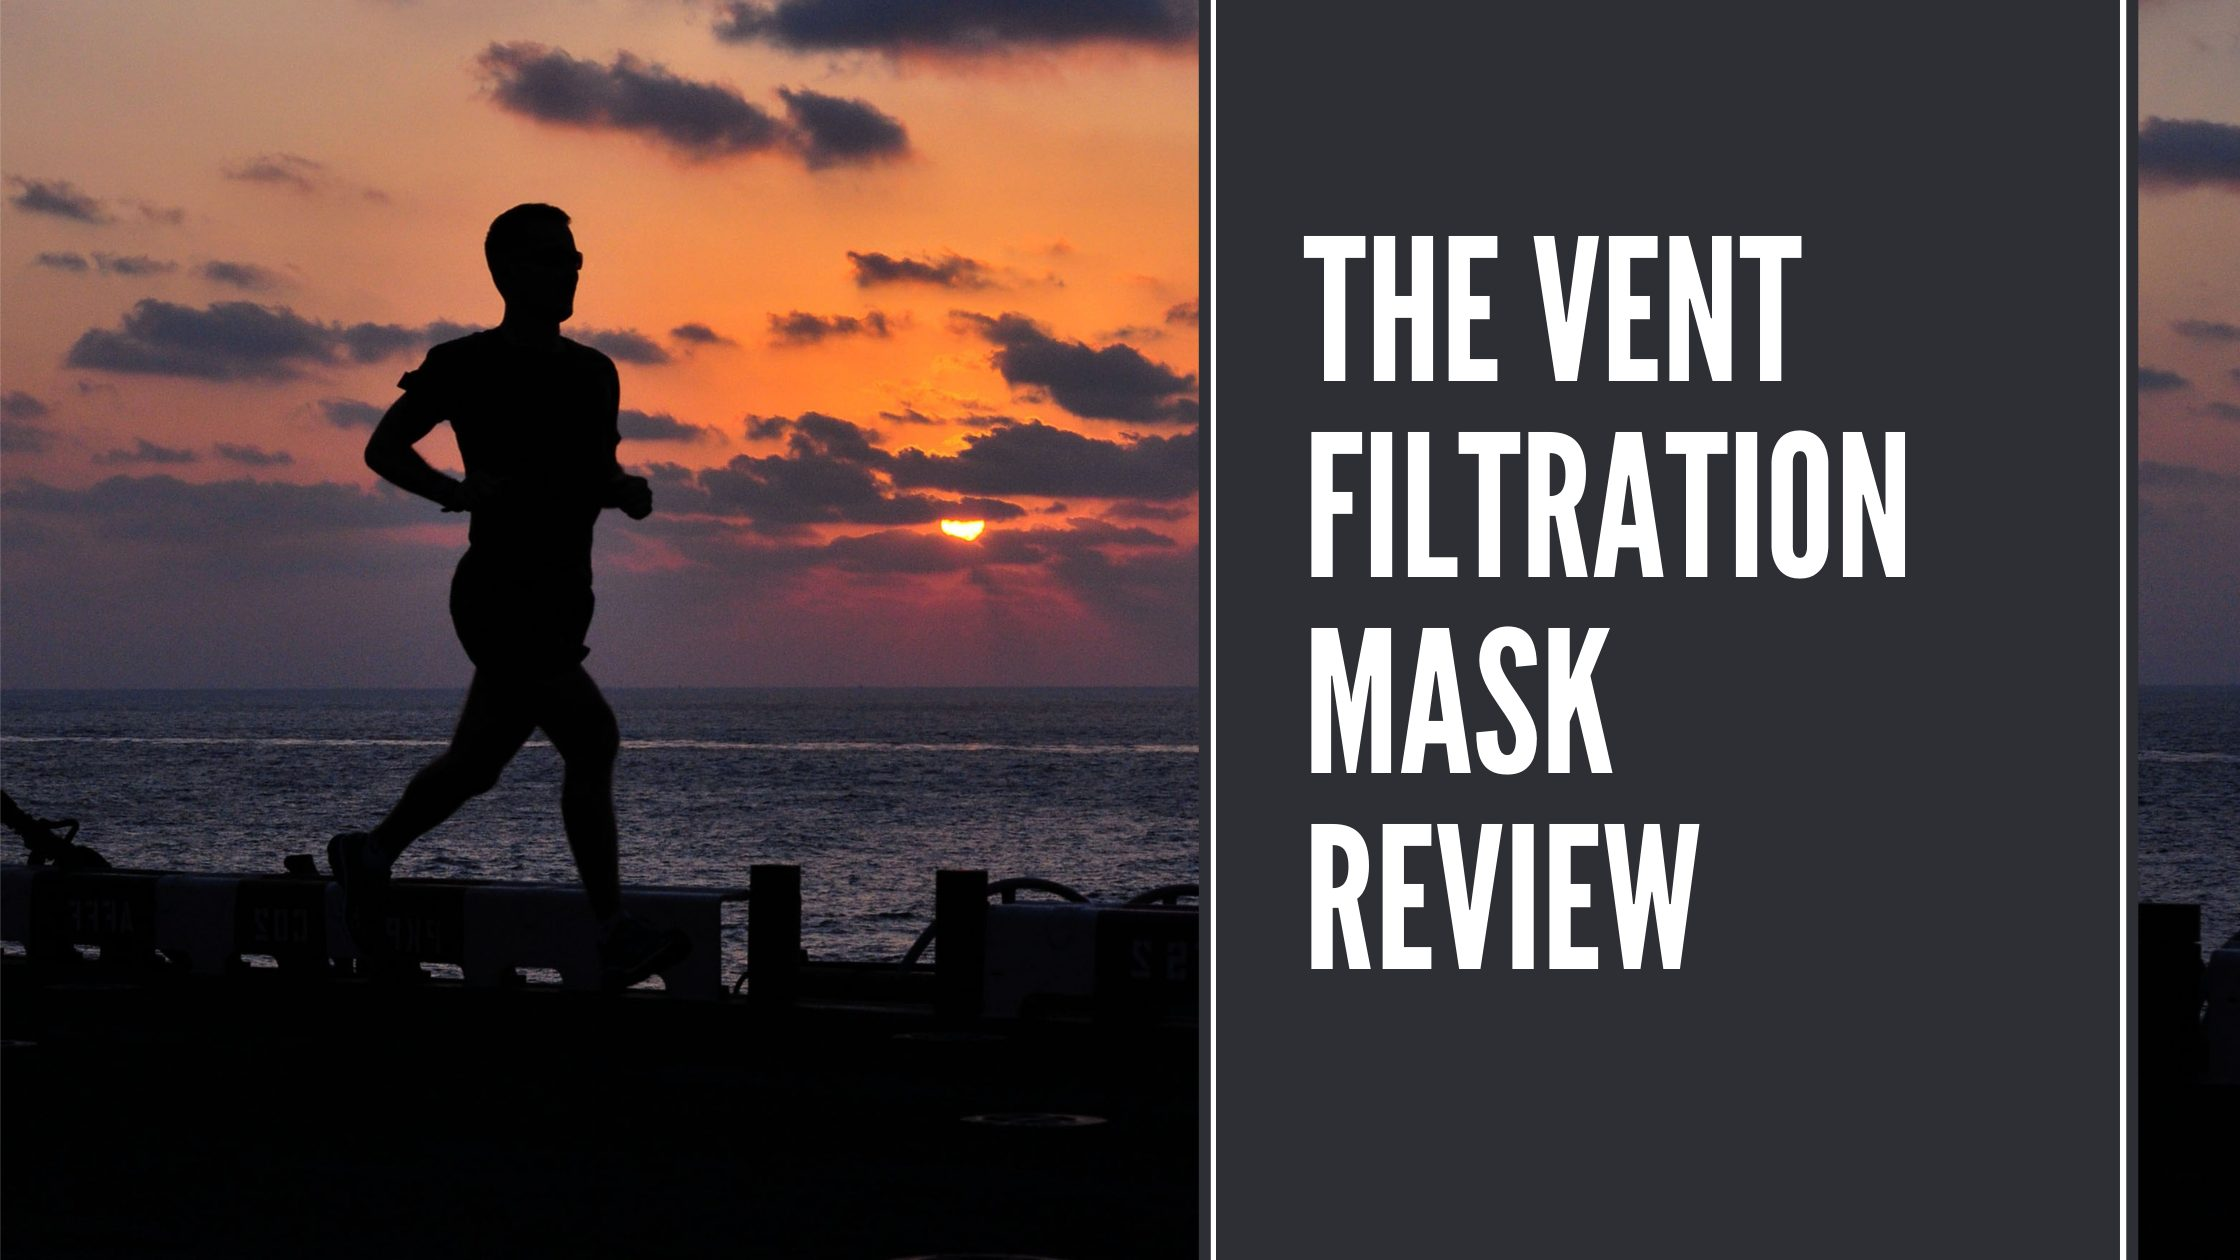 The VENT Dust Filtration Training Mask Review for 2020